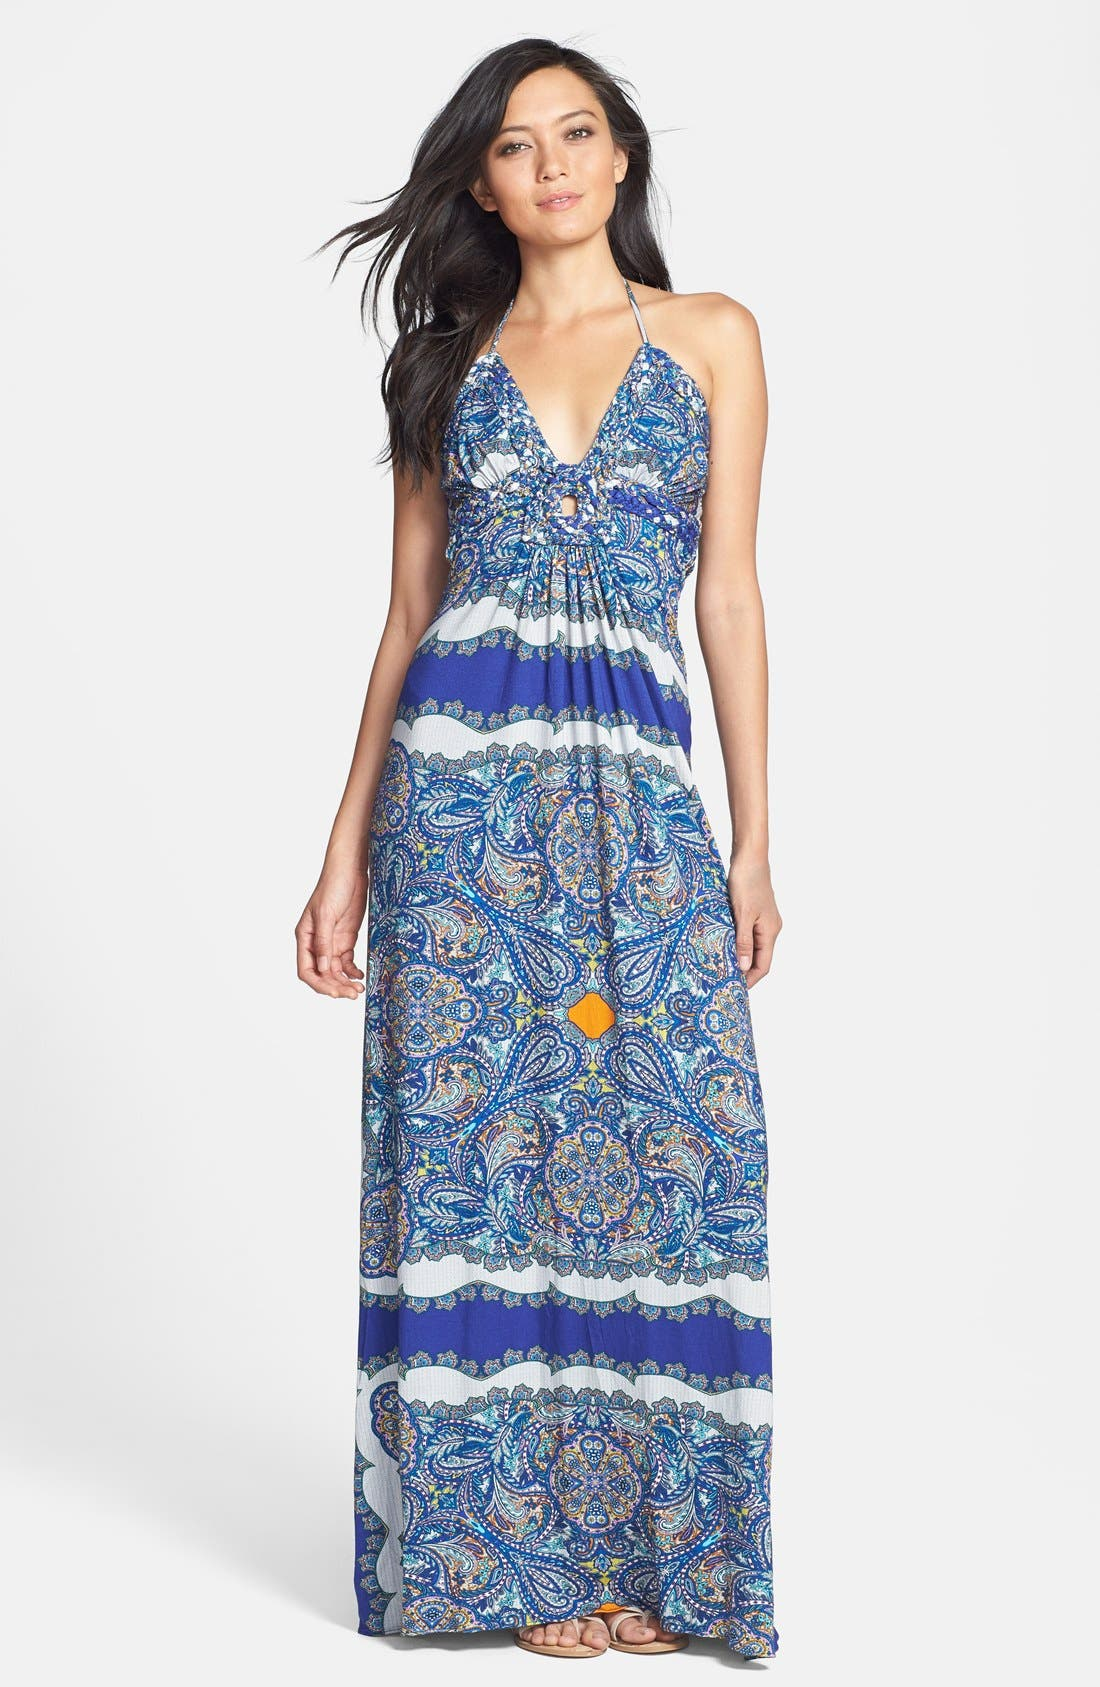 Alternate Image 1 Selected - Sky 'Samuelaa' Print Halter Maxi Dress